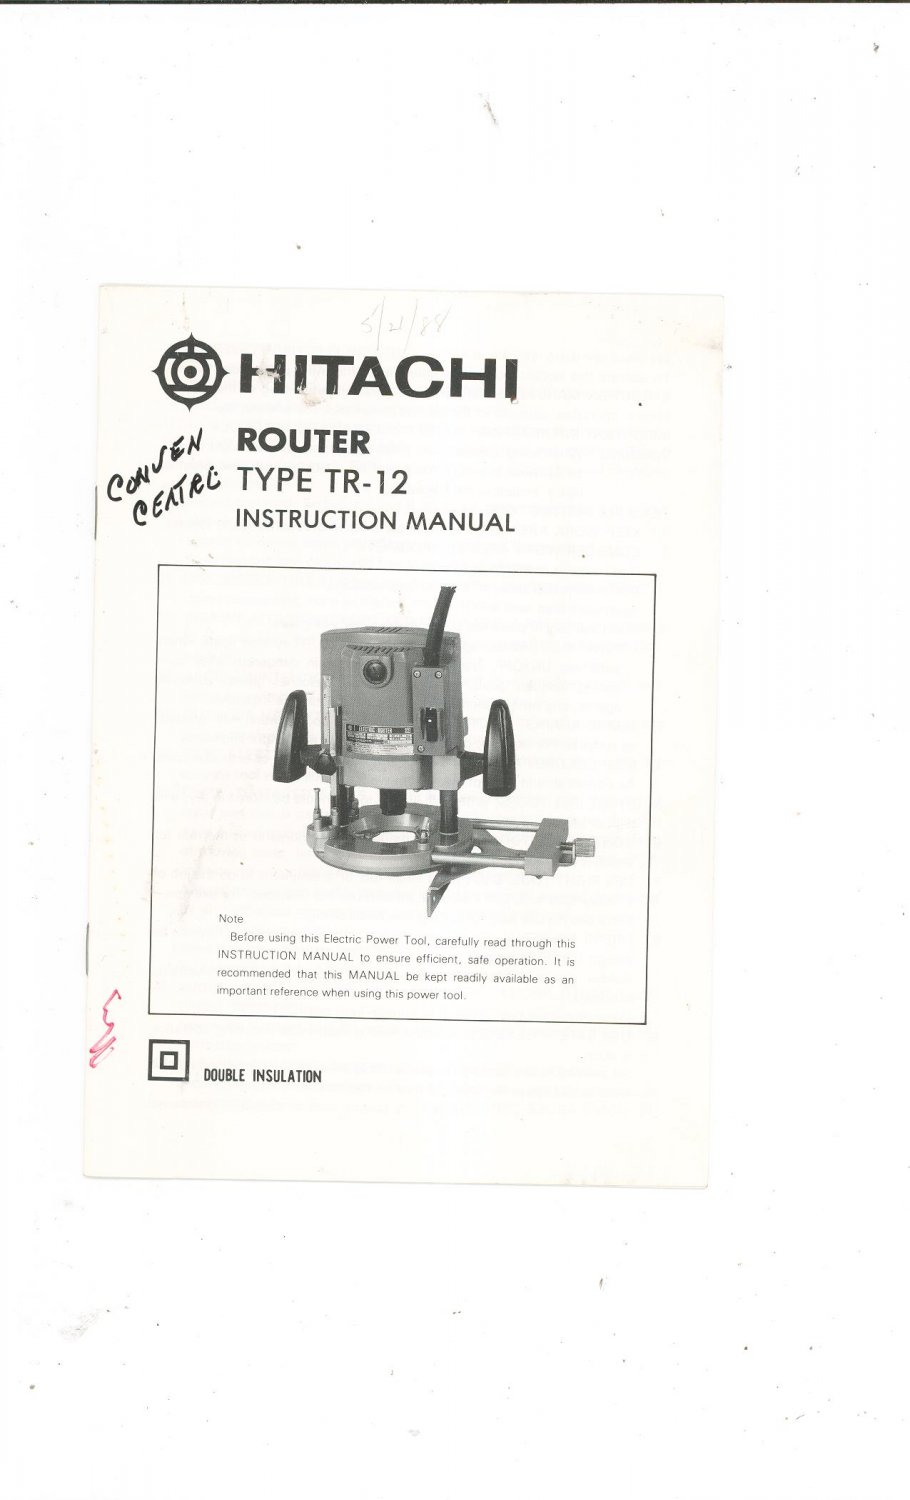 Hitachi Router Type TR-12 Instruction Manual